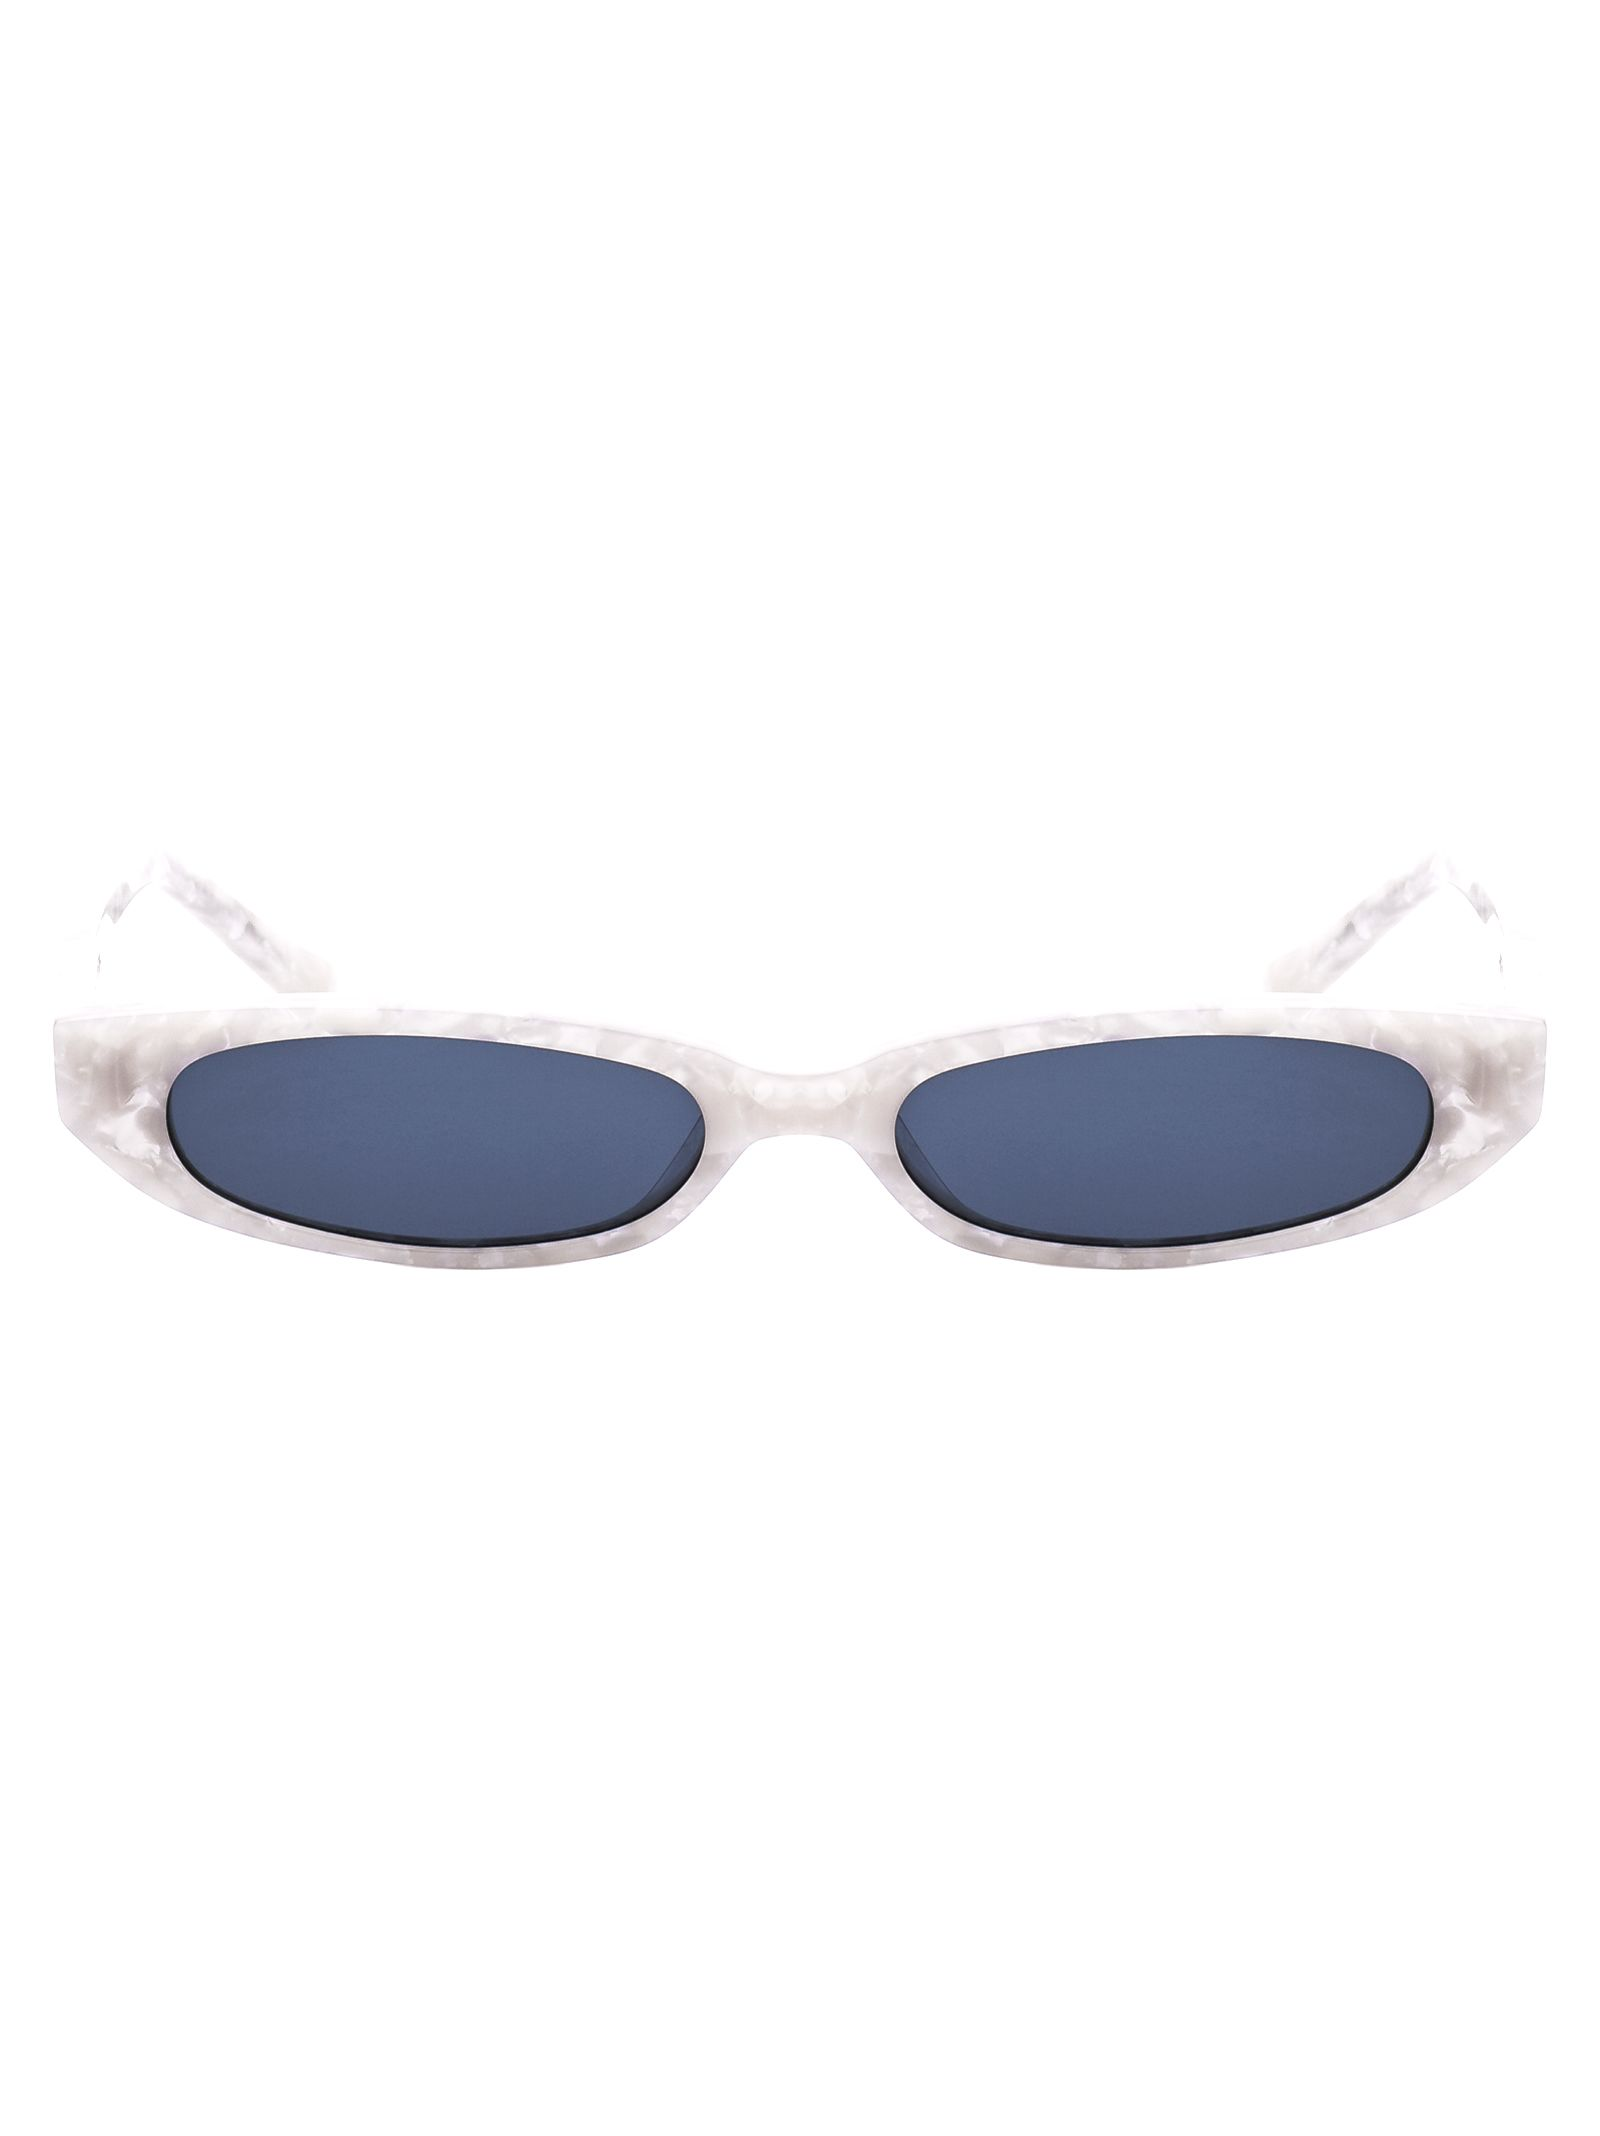 ROBERI & FRAUD Frances Sunglasses in White